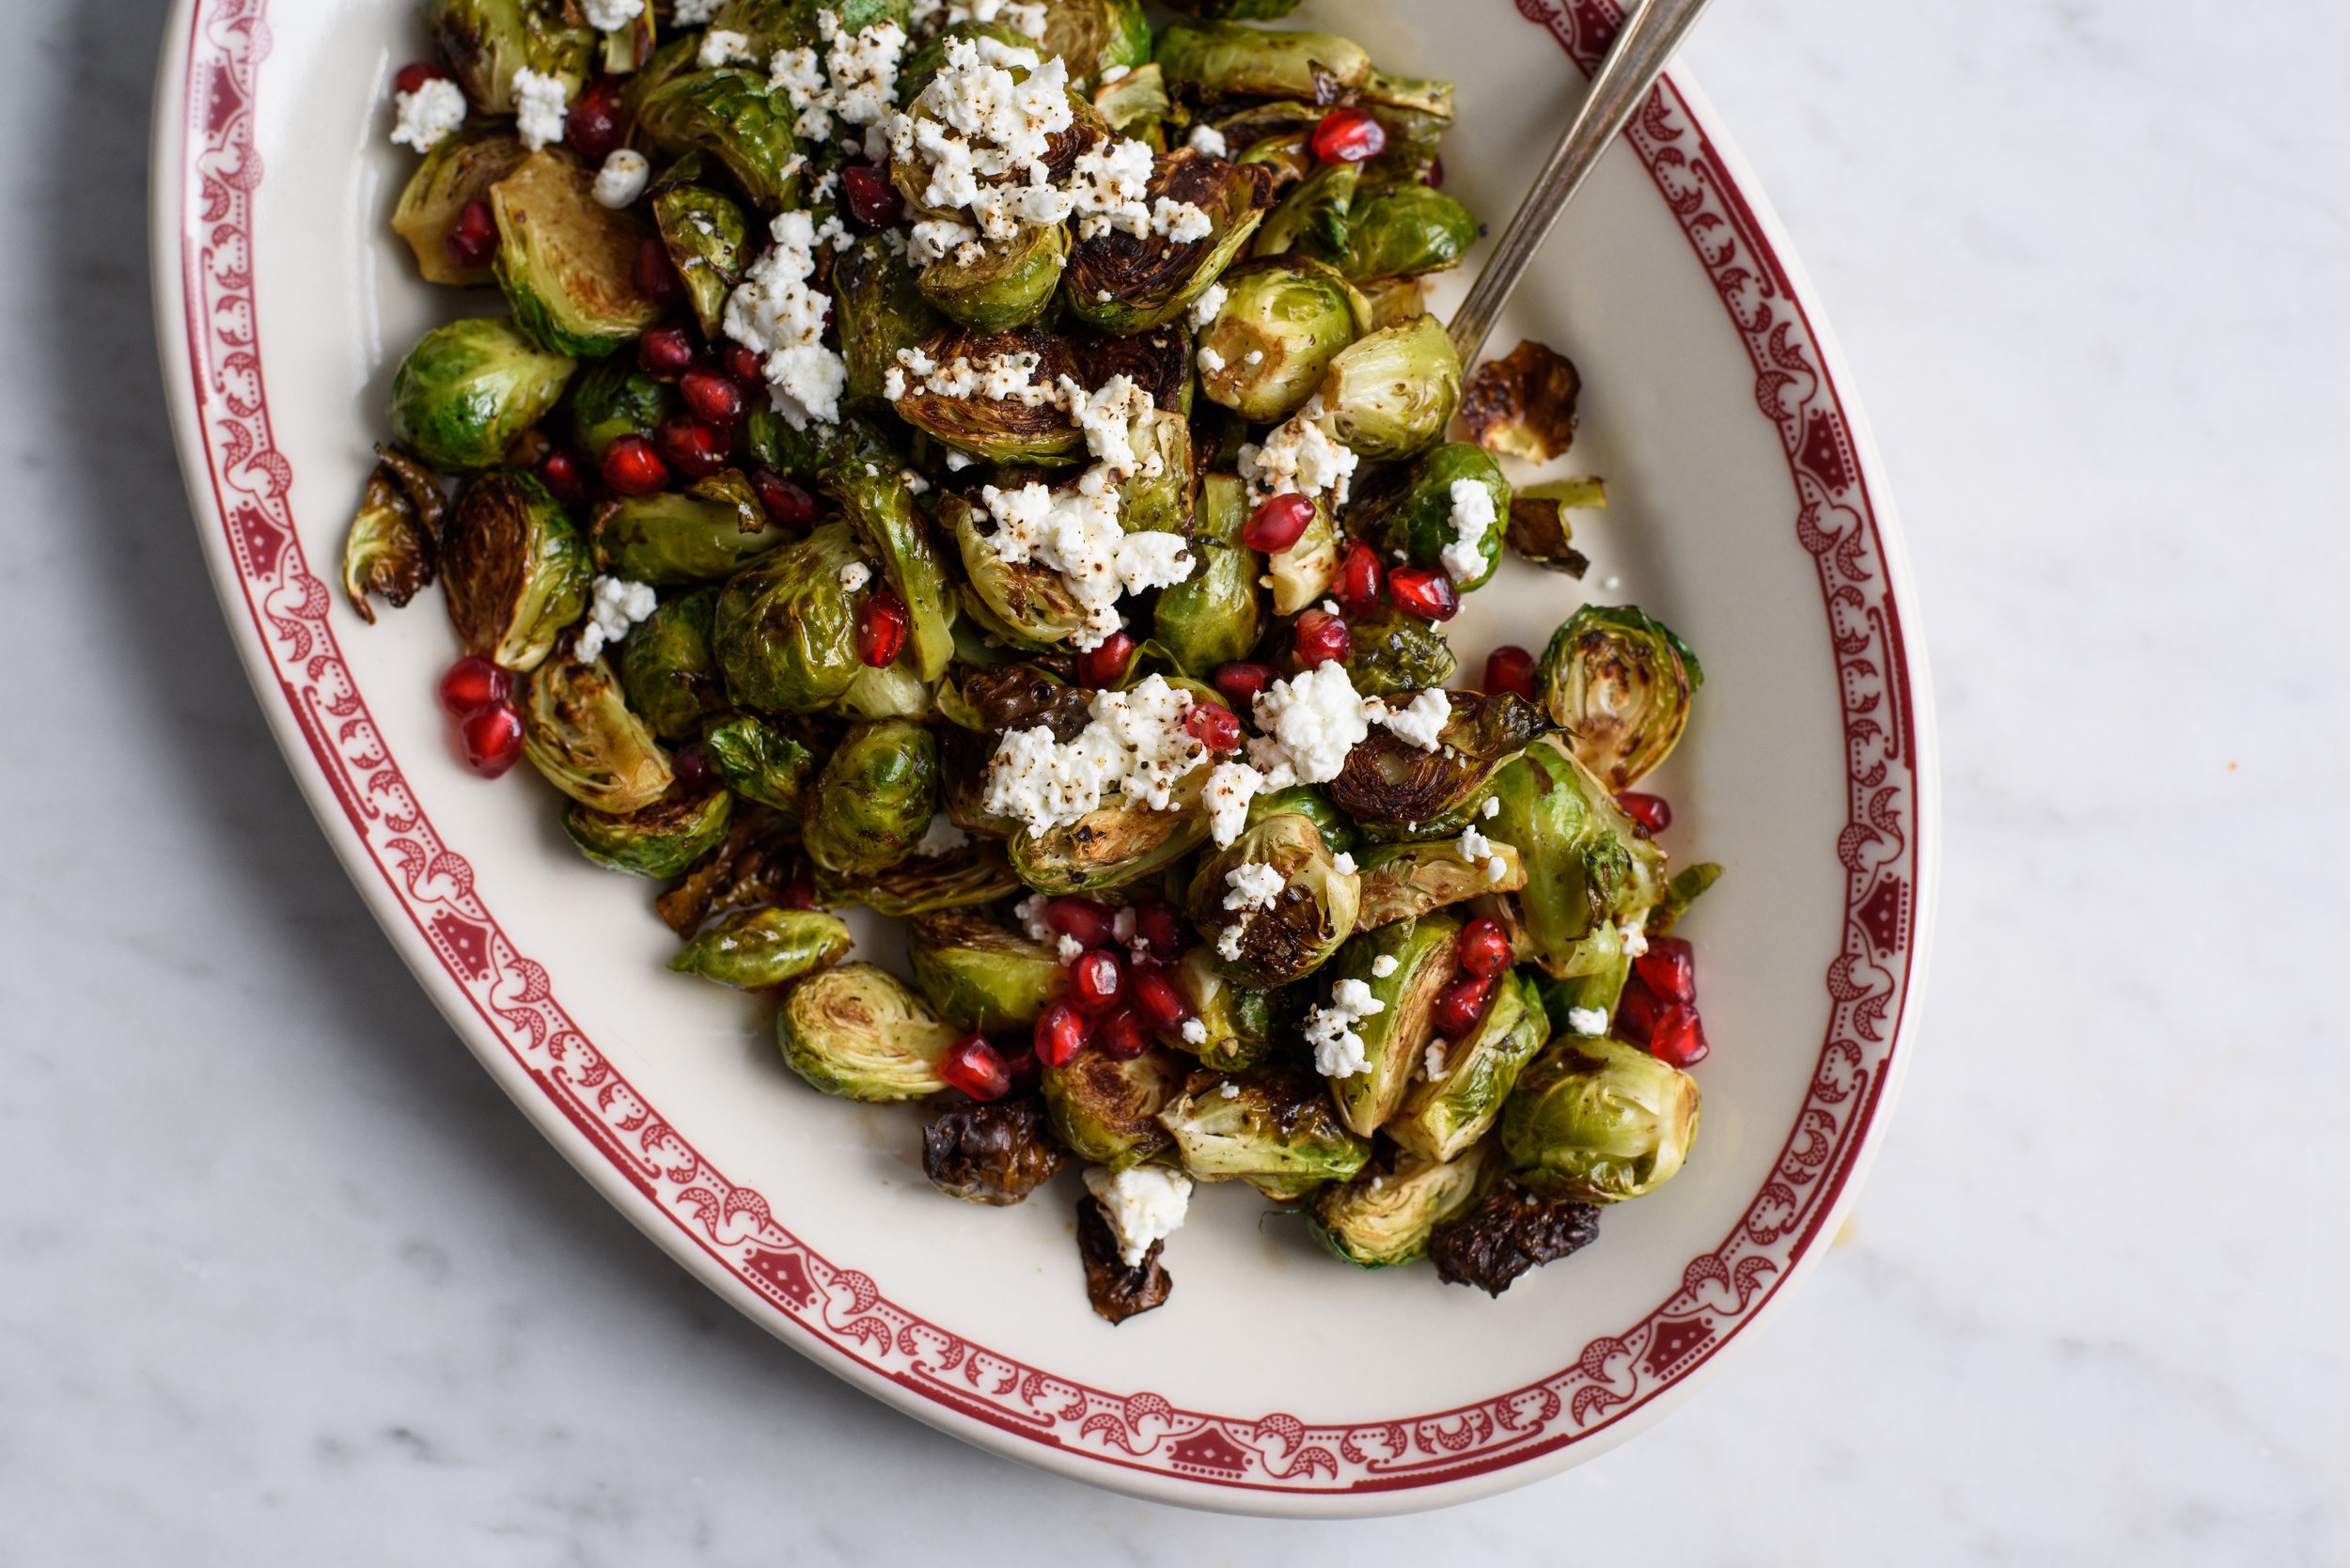 friendsgiving-brussels-sprouts-3'.jpg